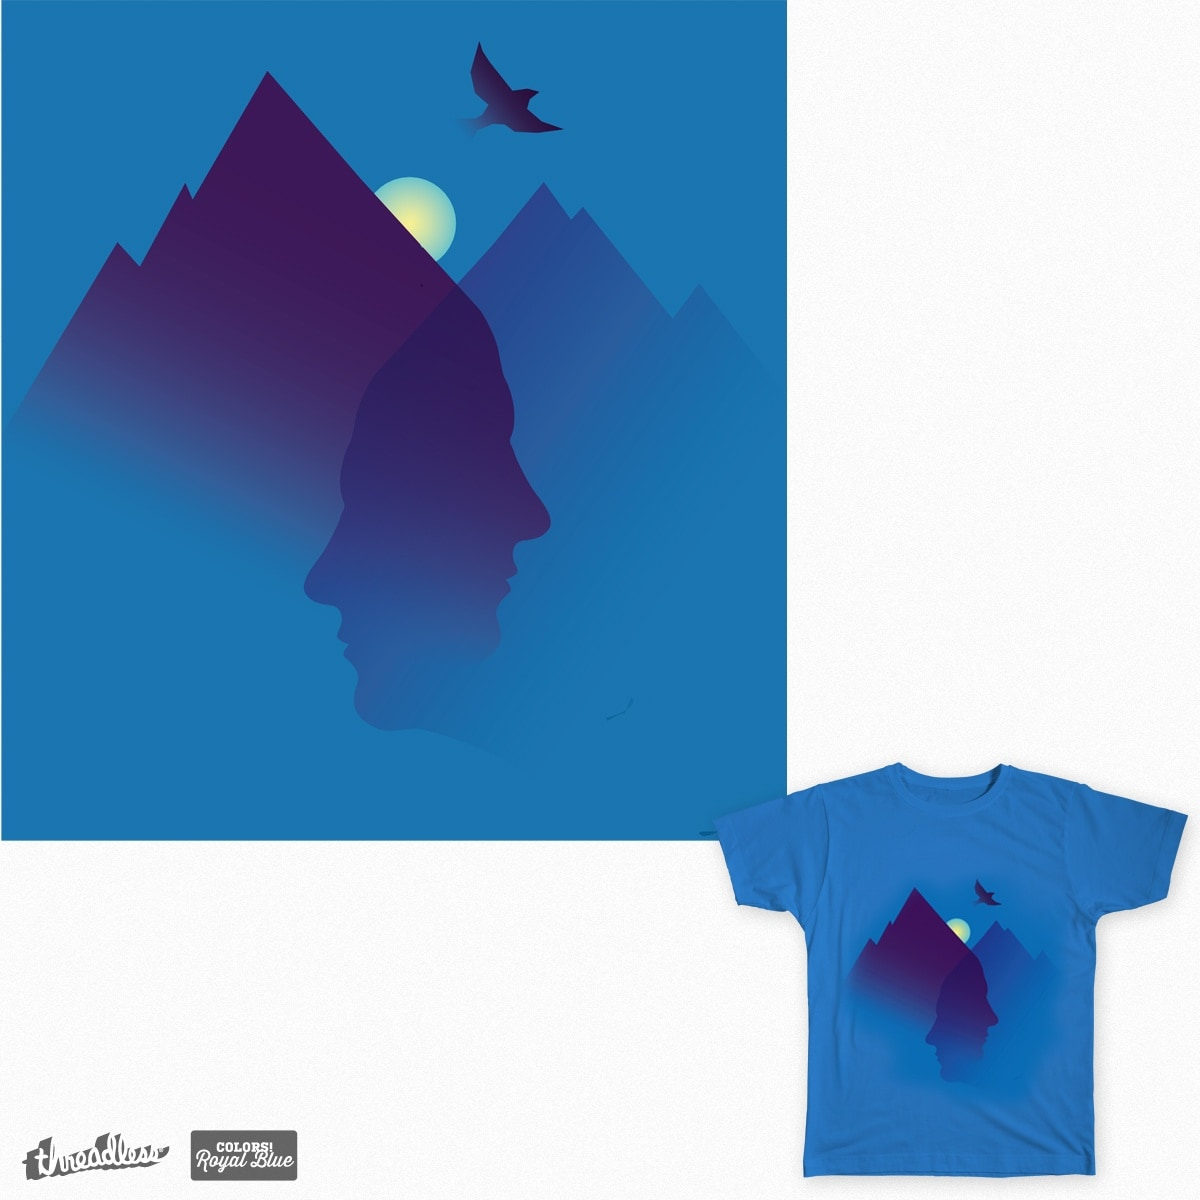 THE VISIONARY by VincentTeoh on Threadless